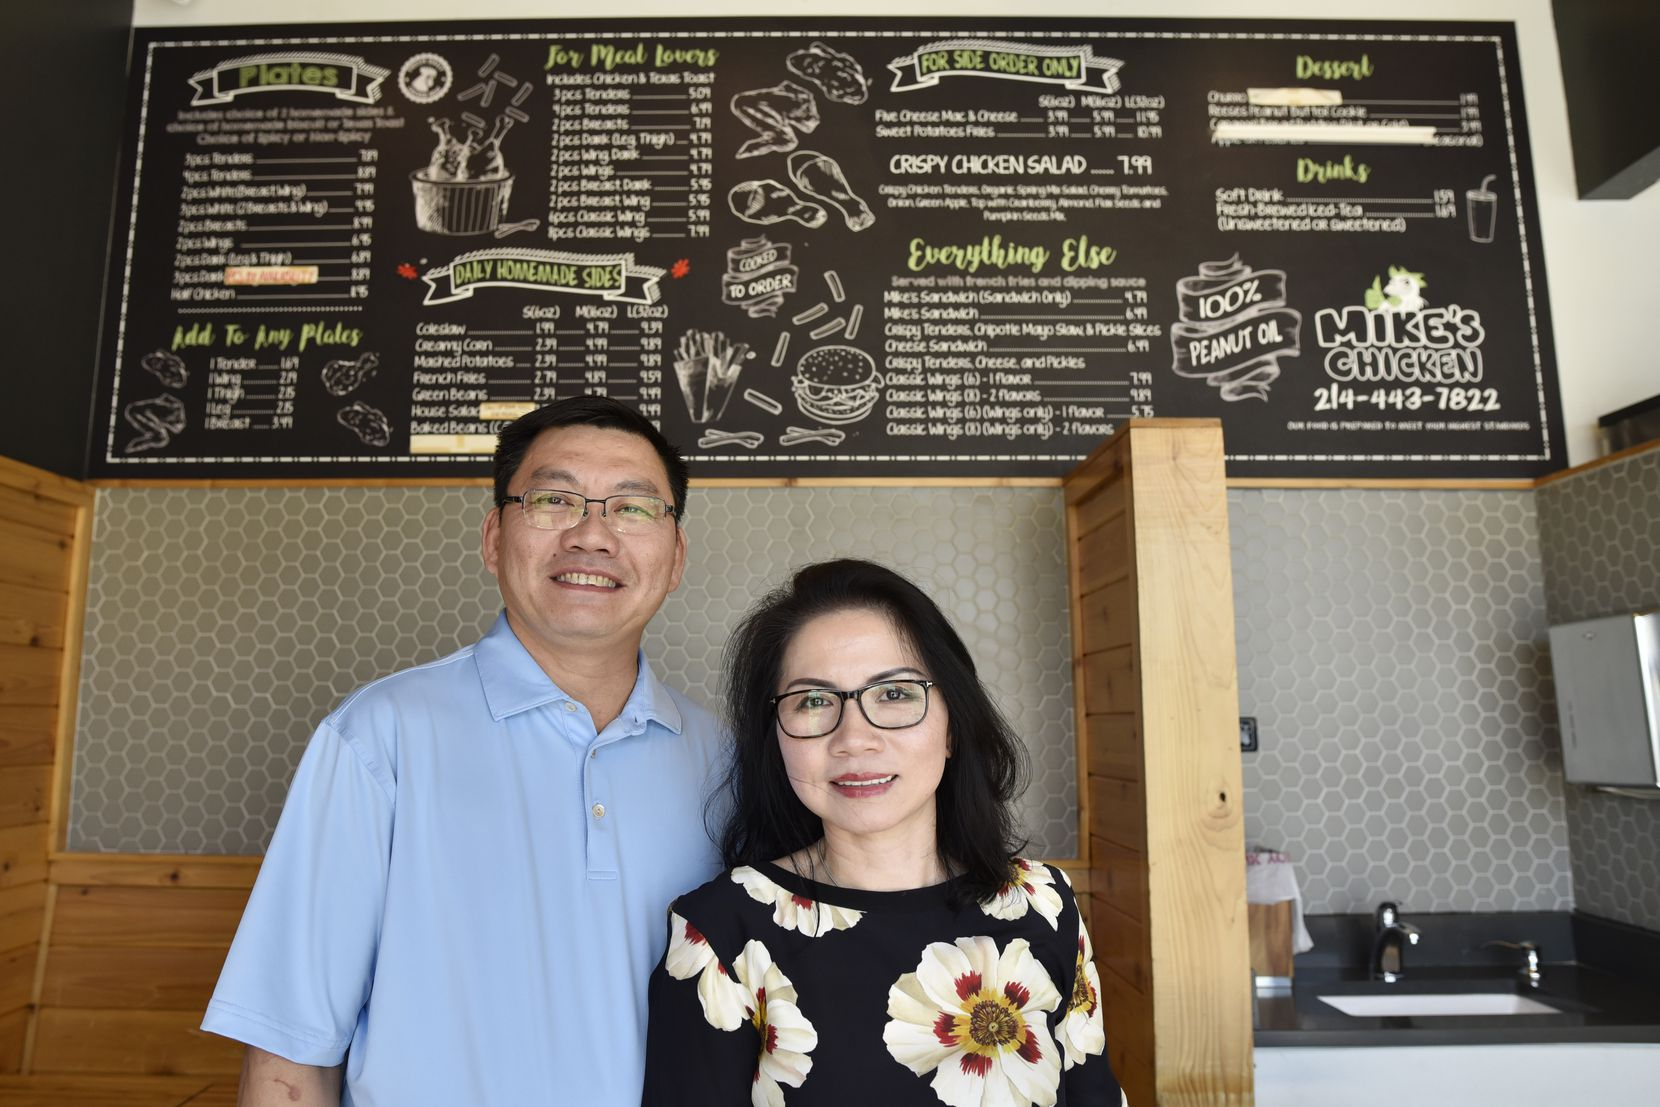 Son Dao, left, and Tram Dao, are co-owners of Mike's Chicken on Maple Avenue in Dallas.